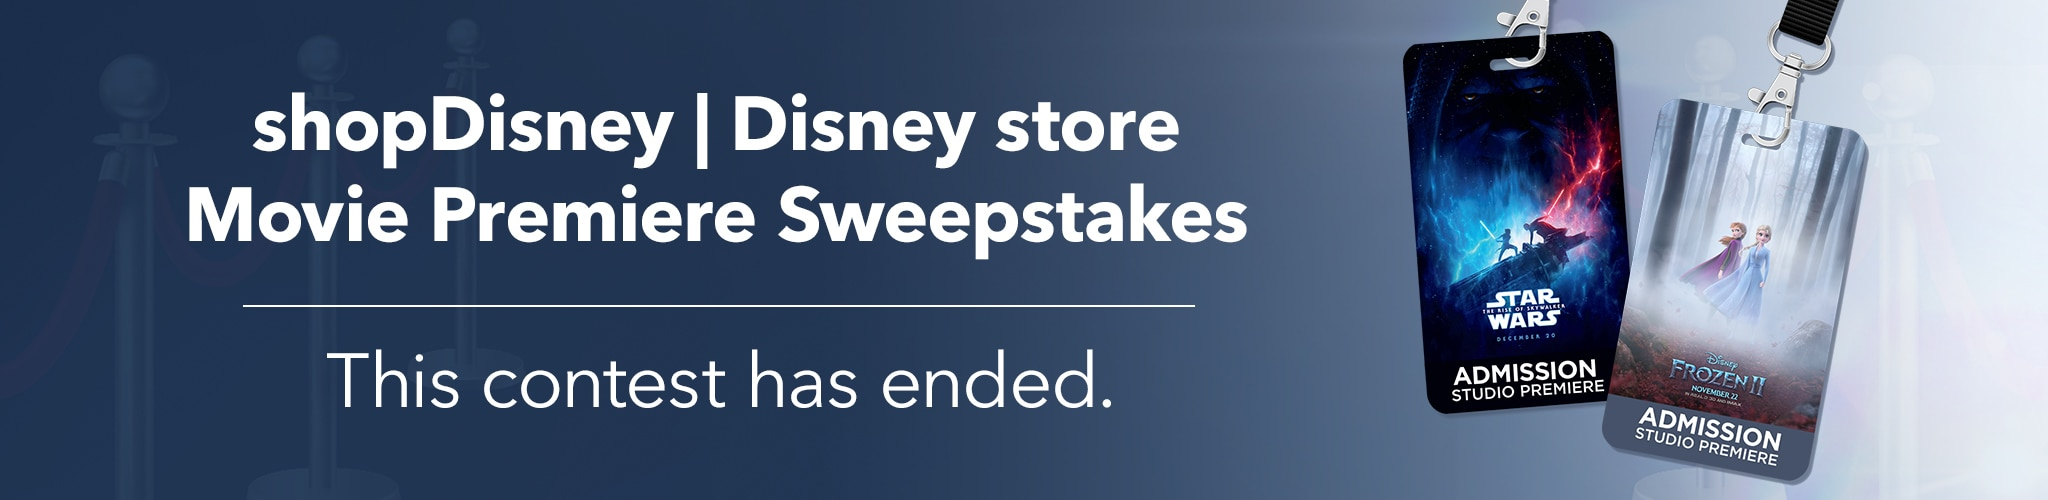 shopDisney | Disney store Movie Premiere Sweepstakes - This contest has ended.